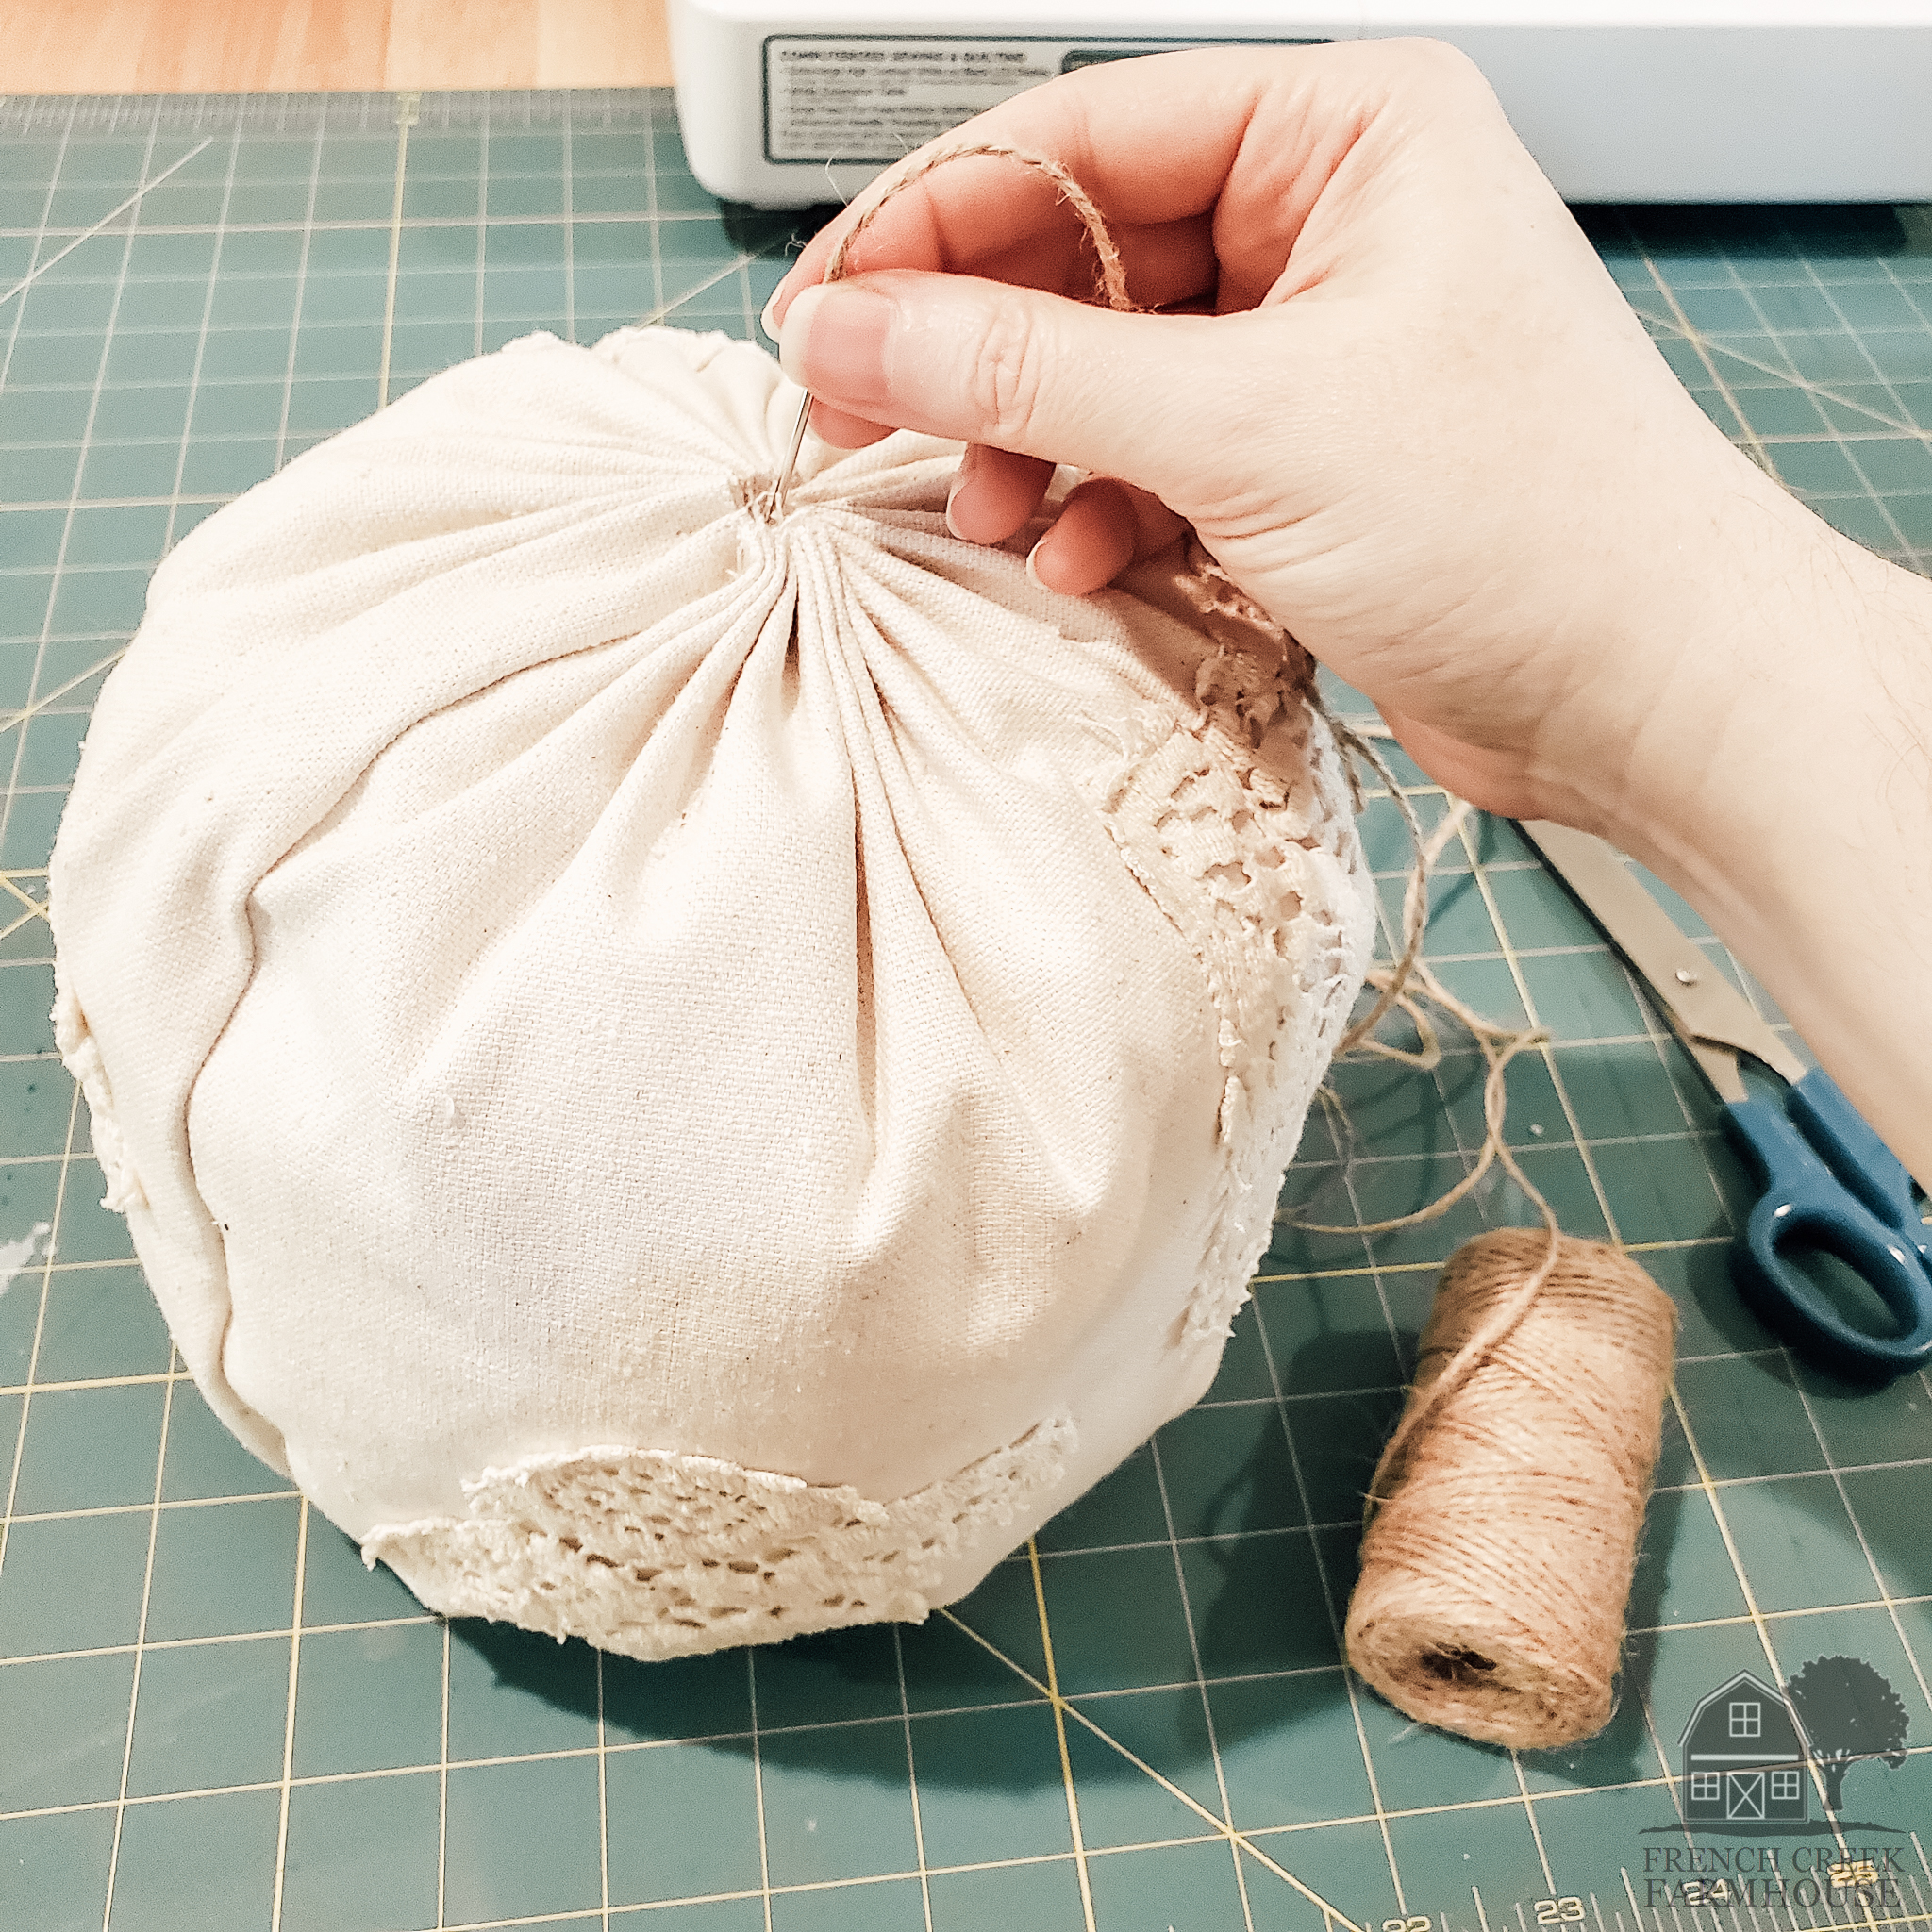 Transform your fabric ball to a pumpkin with twine